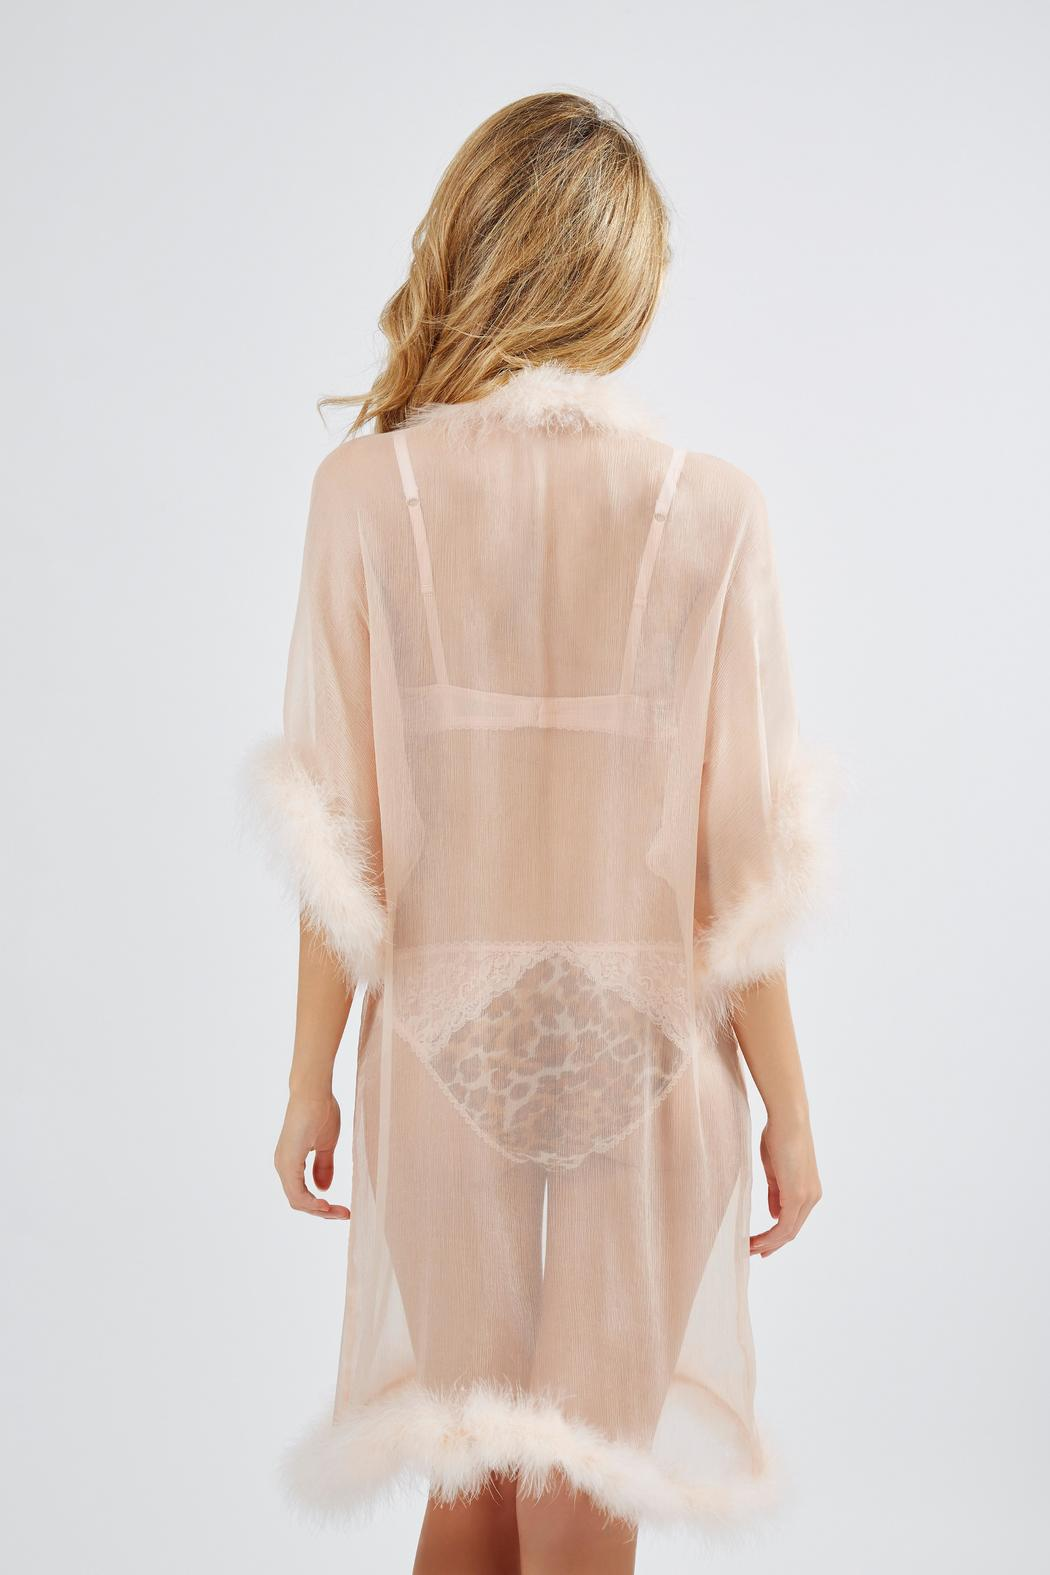 8a3be0bfdae36 Mimi Holliday Maribou Silk Robe from Canada by Esprit de la Femme ...